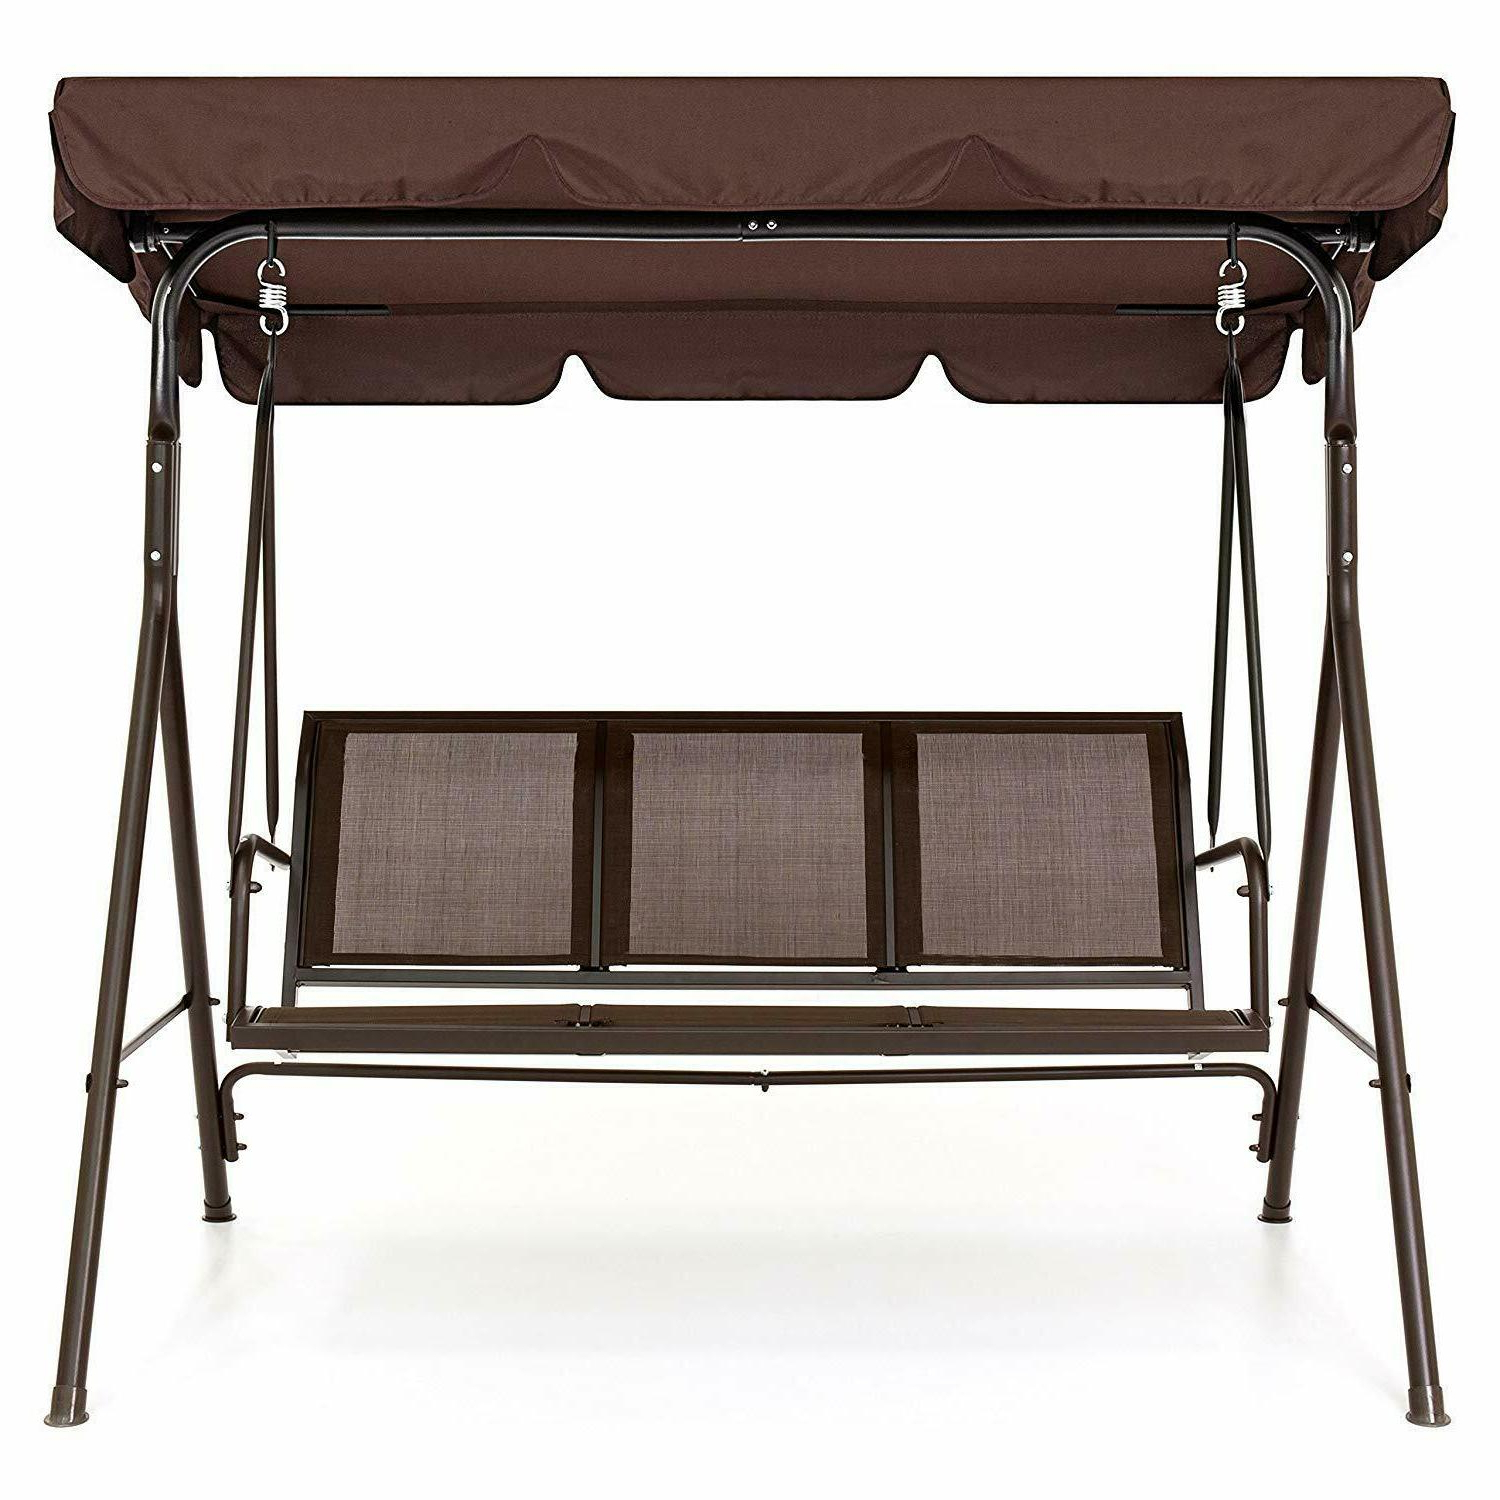 Best Choice Products 2 Person Outdoor Convertible Canopy Porch Swing – Brown Inside Recent Porch Swings With Canopy (View 16 of 30)